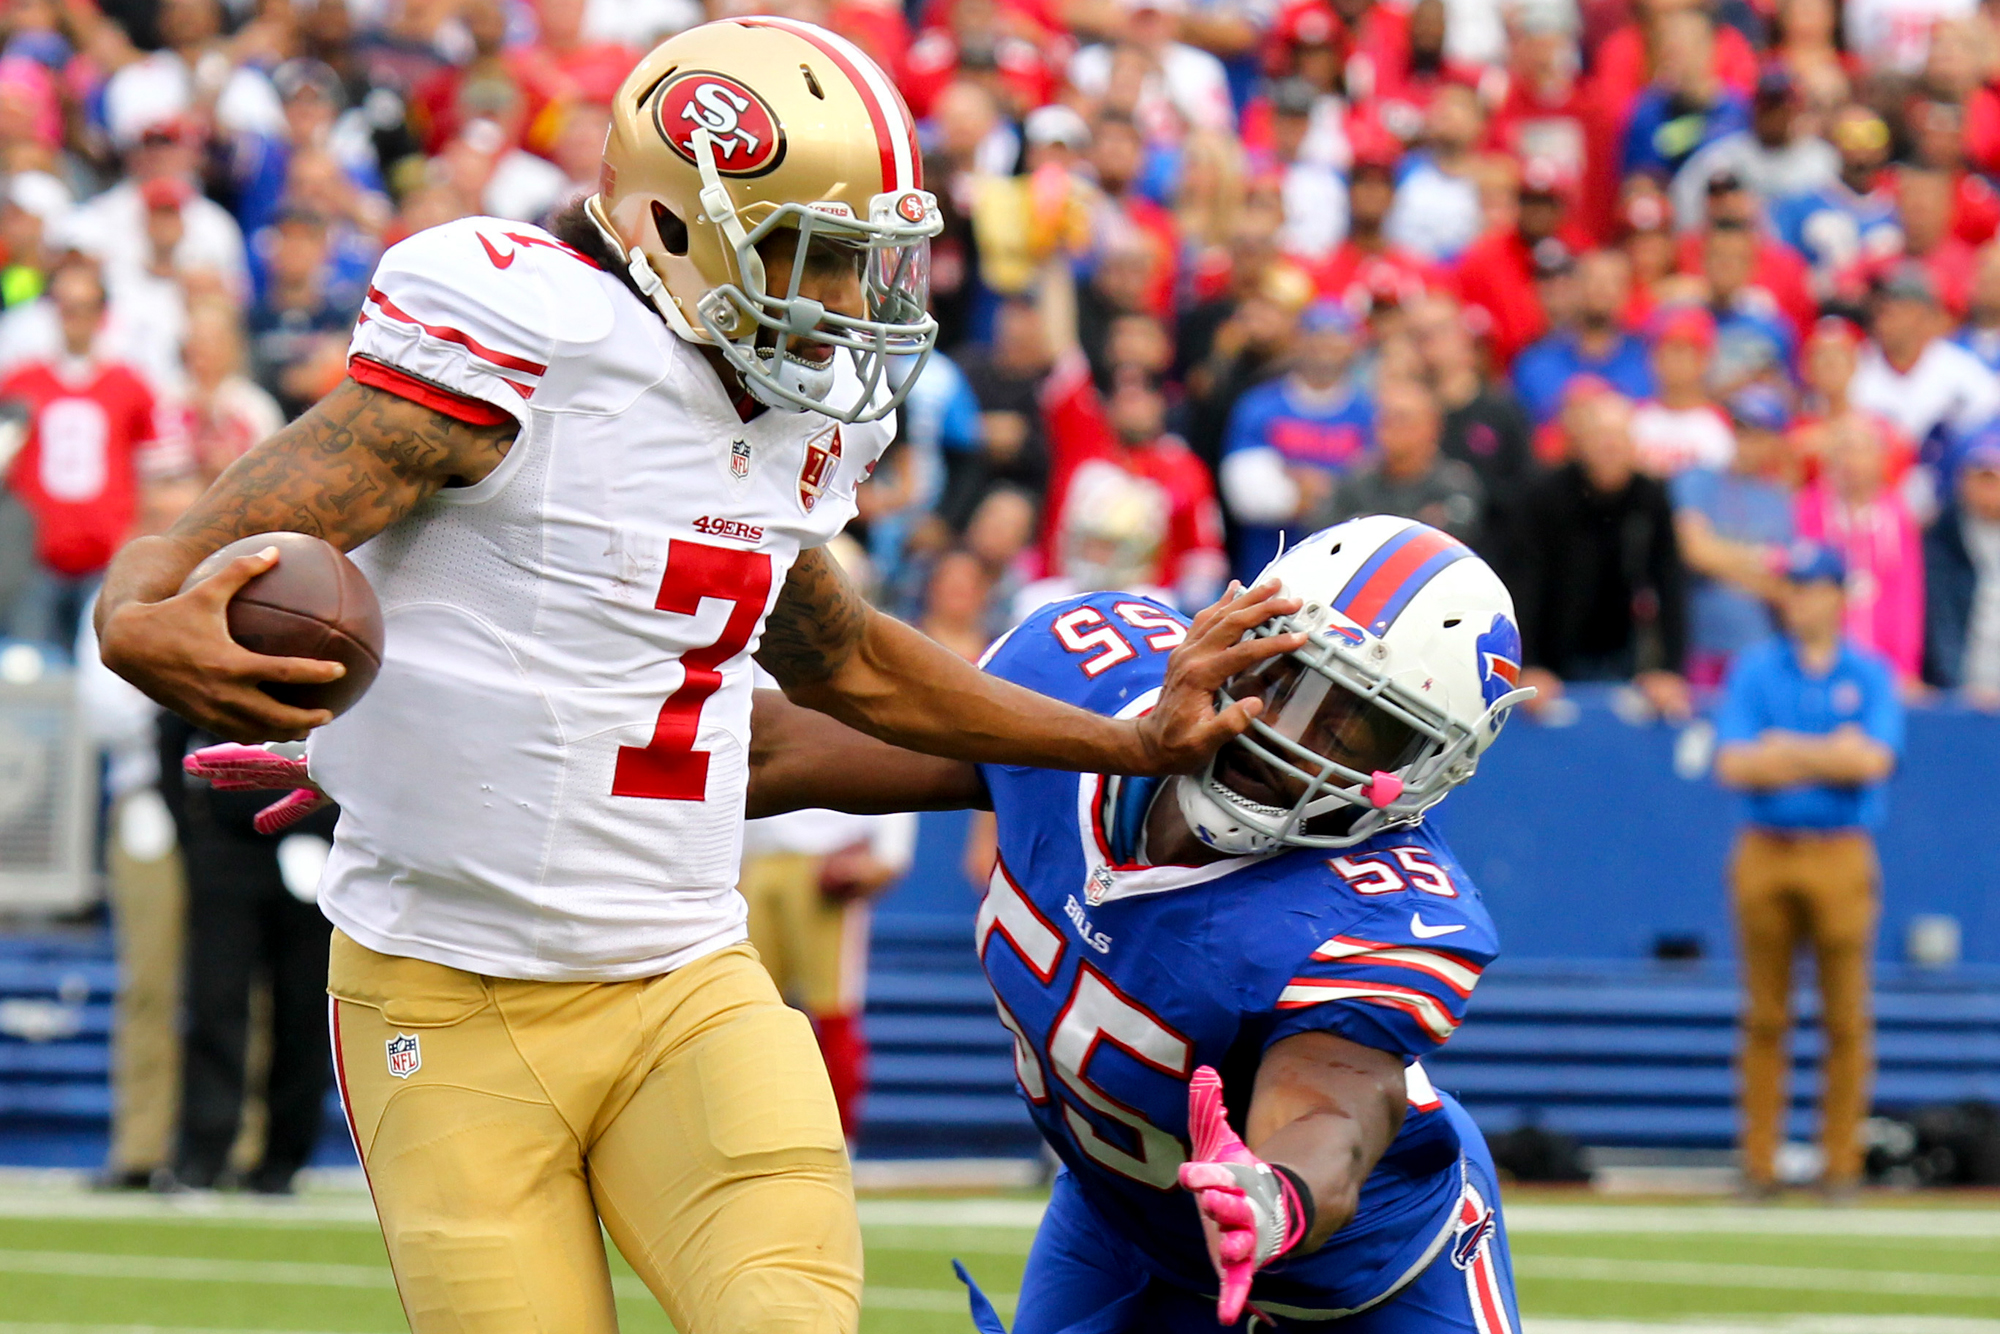 San Francisco 49ers quarterback Colin Kaepernick (7) pushes off Buffalo Bills outside linebacker Jerry Hughes (55) during the second half of an NFL football game on Sunday, Oct. 16, 2016, in Orchard Park, N.Y.